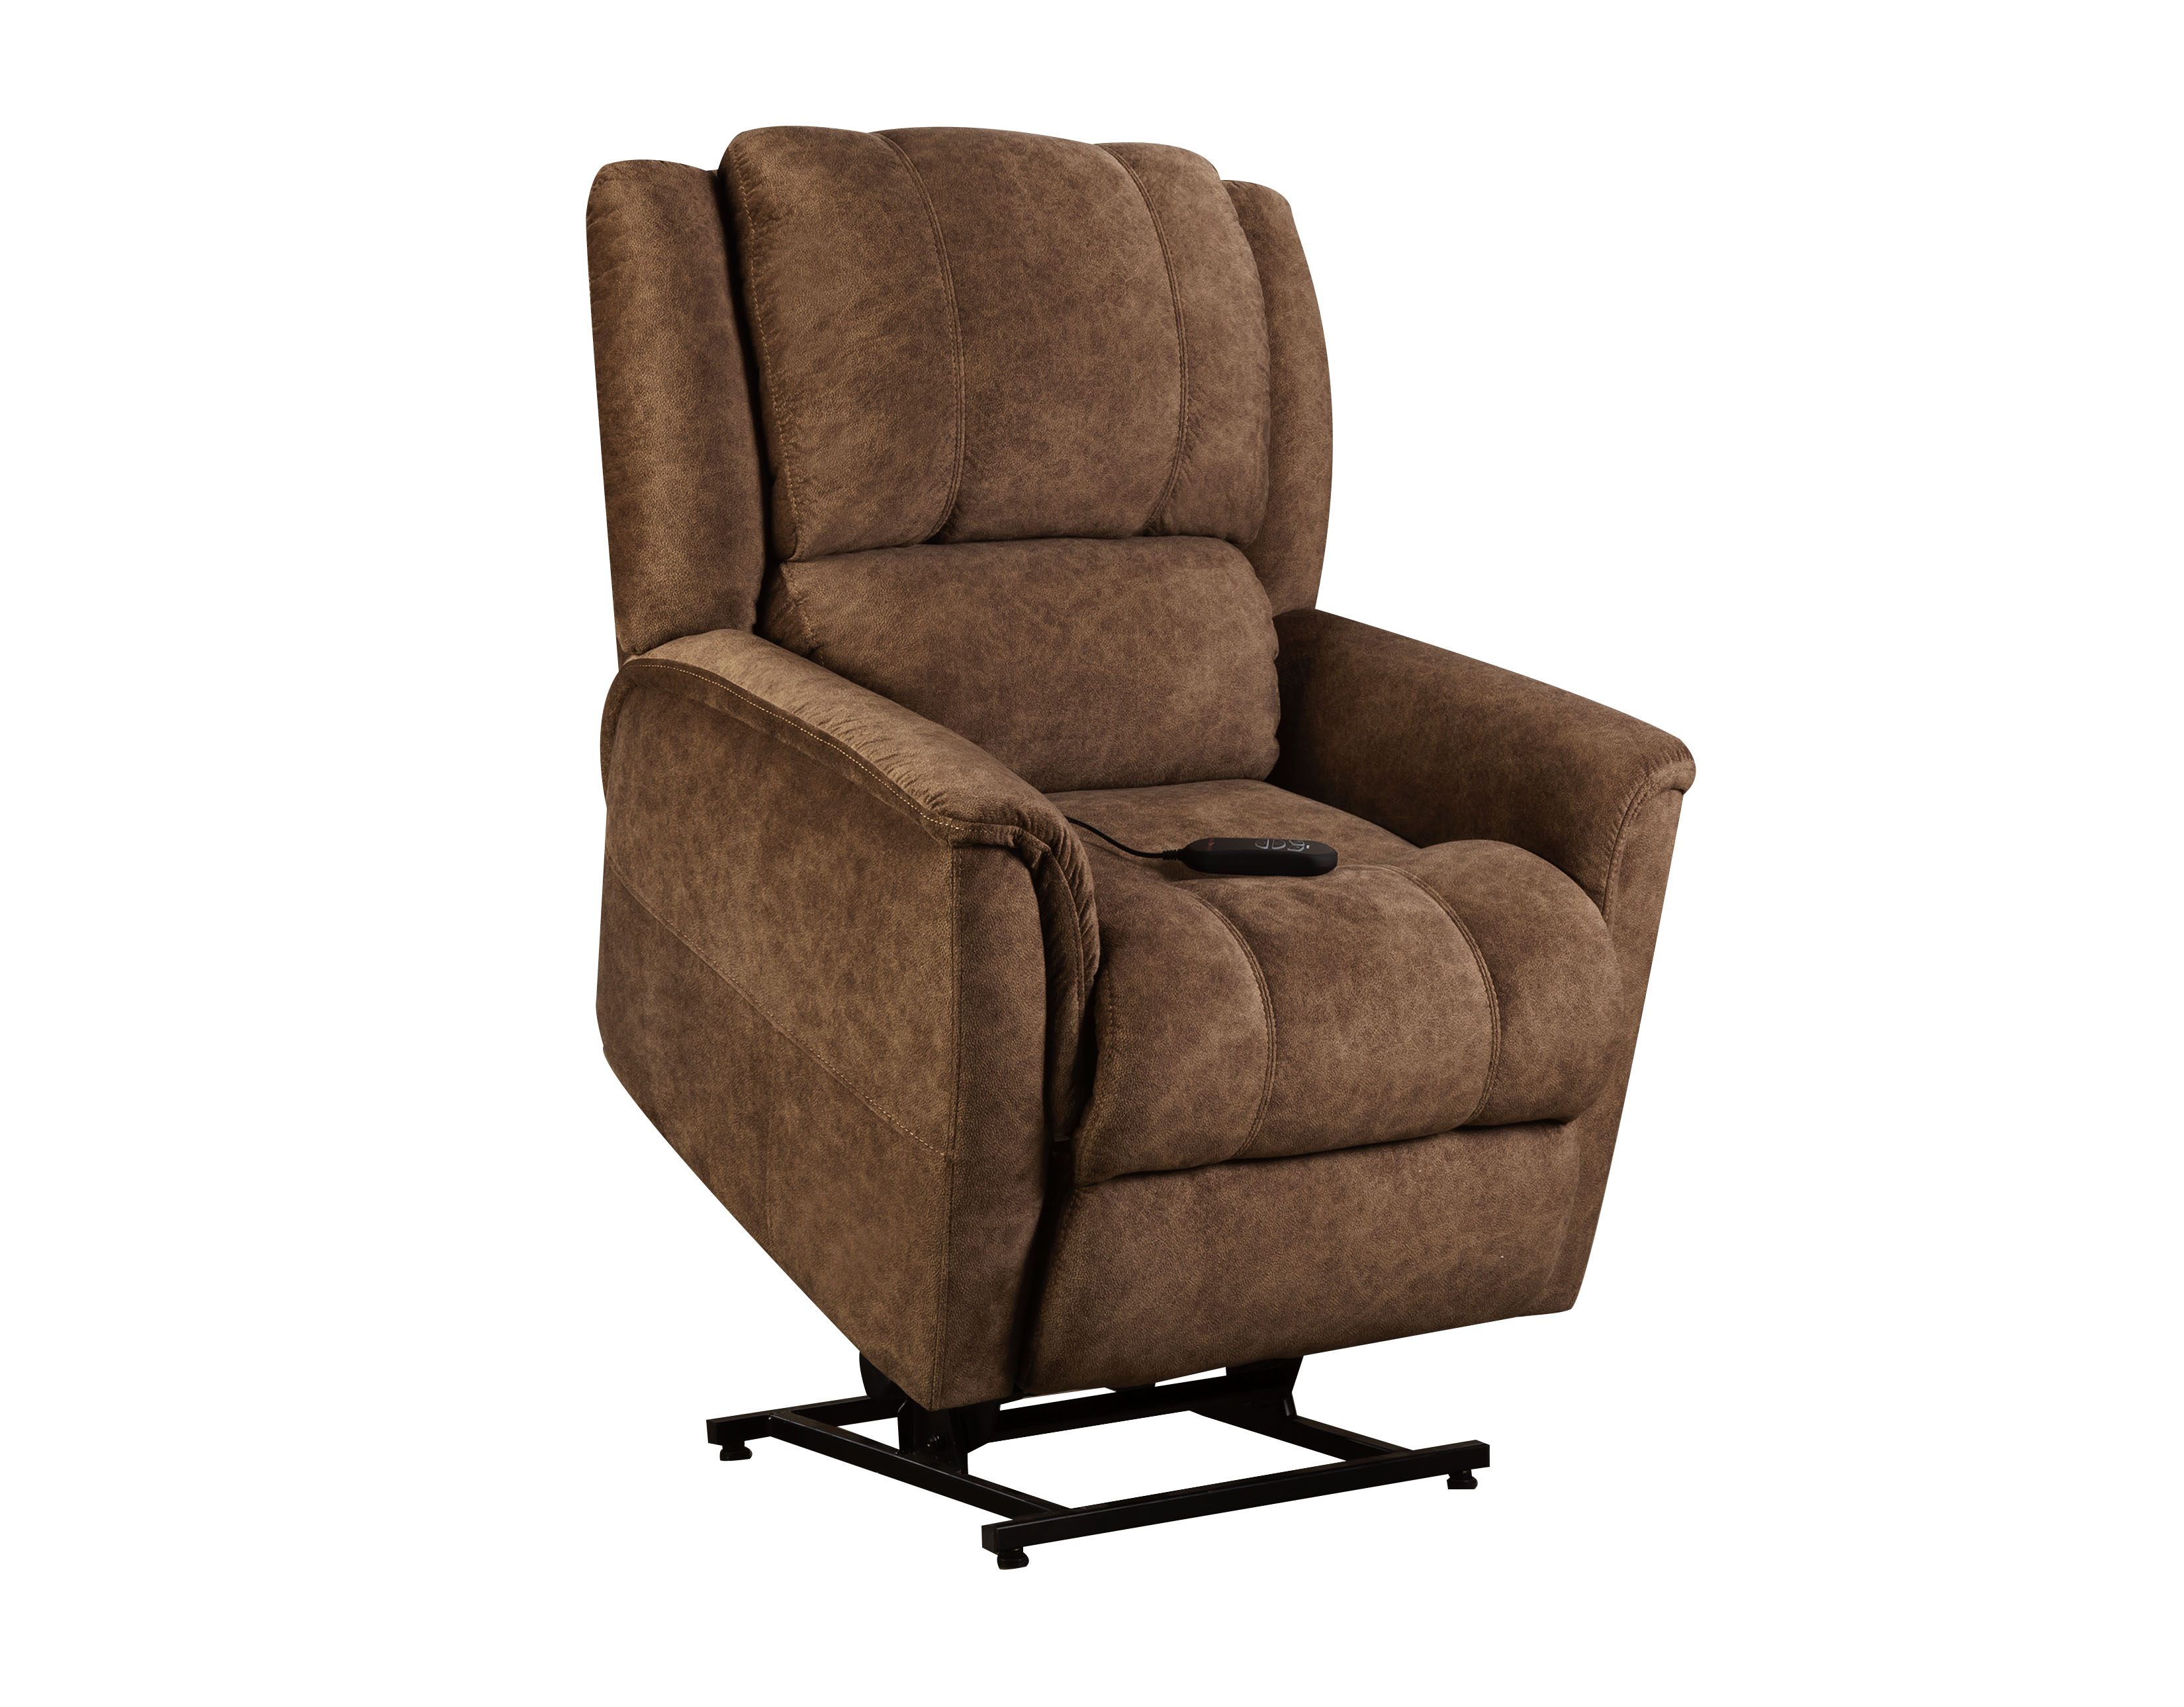 Brilliant Homestretch Put Your Feet Up Lift Chairs Unemploymentrelief Wooden Chair Designs For Living Room Unemploymentrelieforg